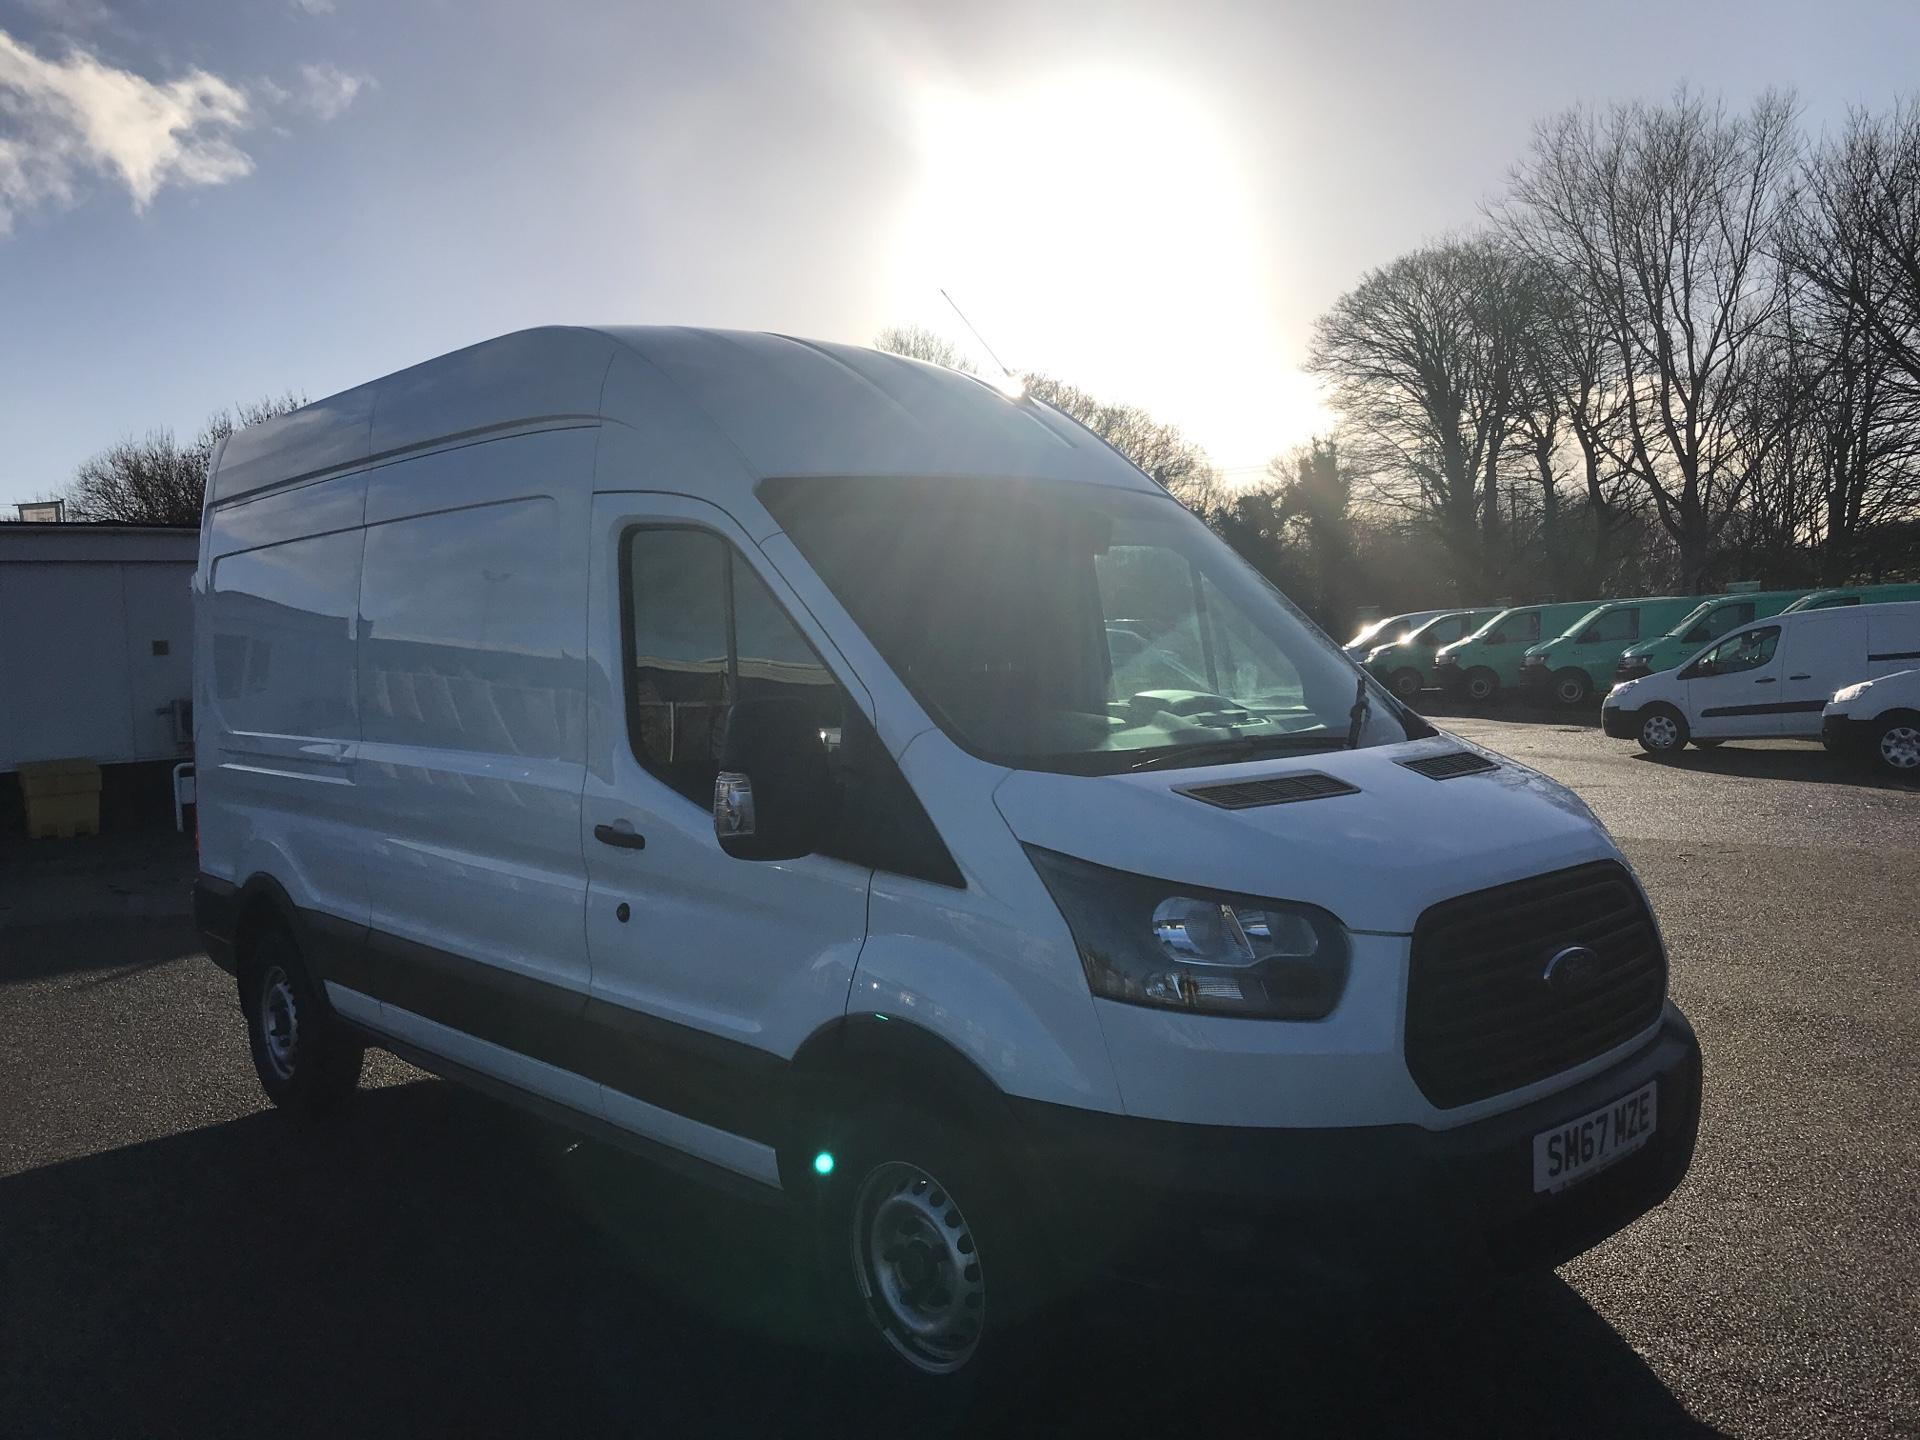 2018 Ford Transit L3 H3 VAN 130PS EURO 6  *VALUE RANGE VEHICLE - CONDITION REFLECTED IN PRICE*  (SM67MZE)